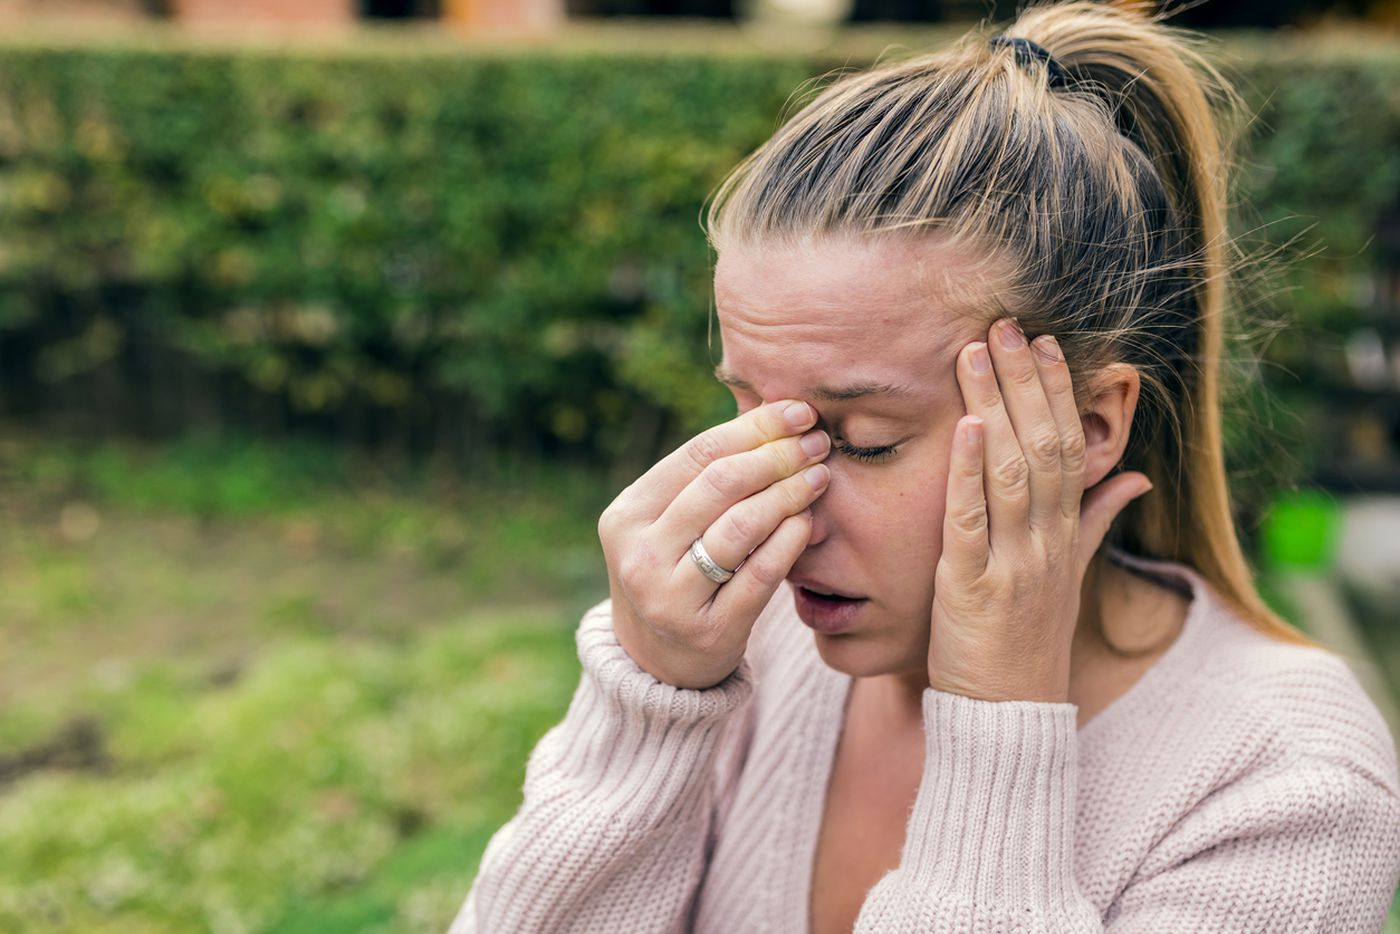 Q&A: What's the difference between a summer cold and a sinus infection?